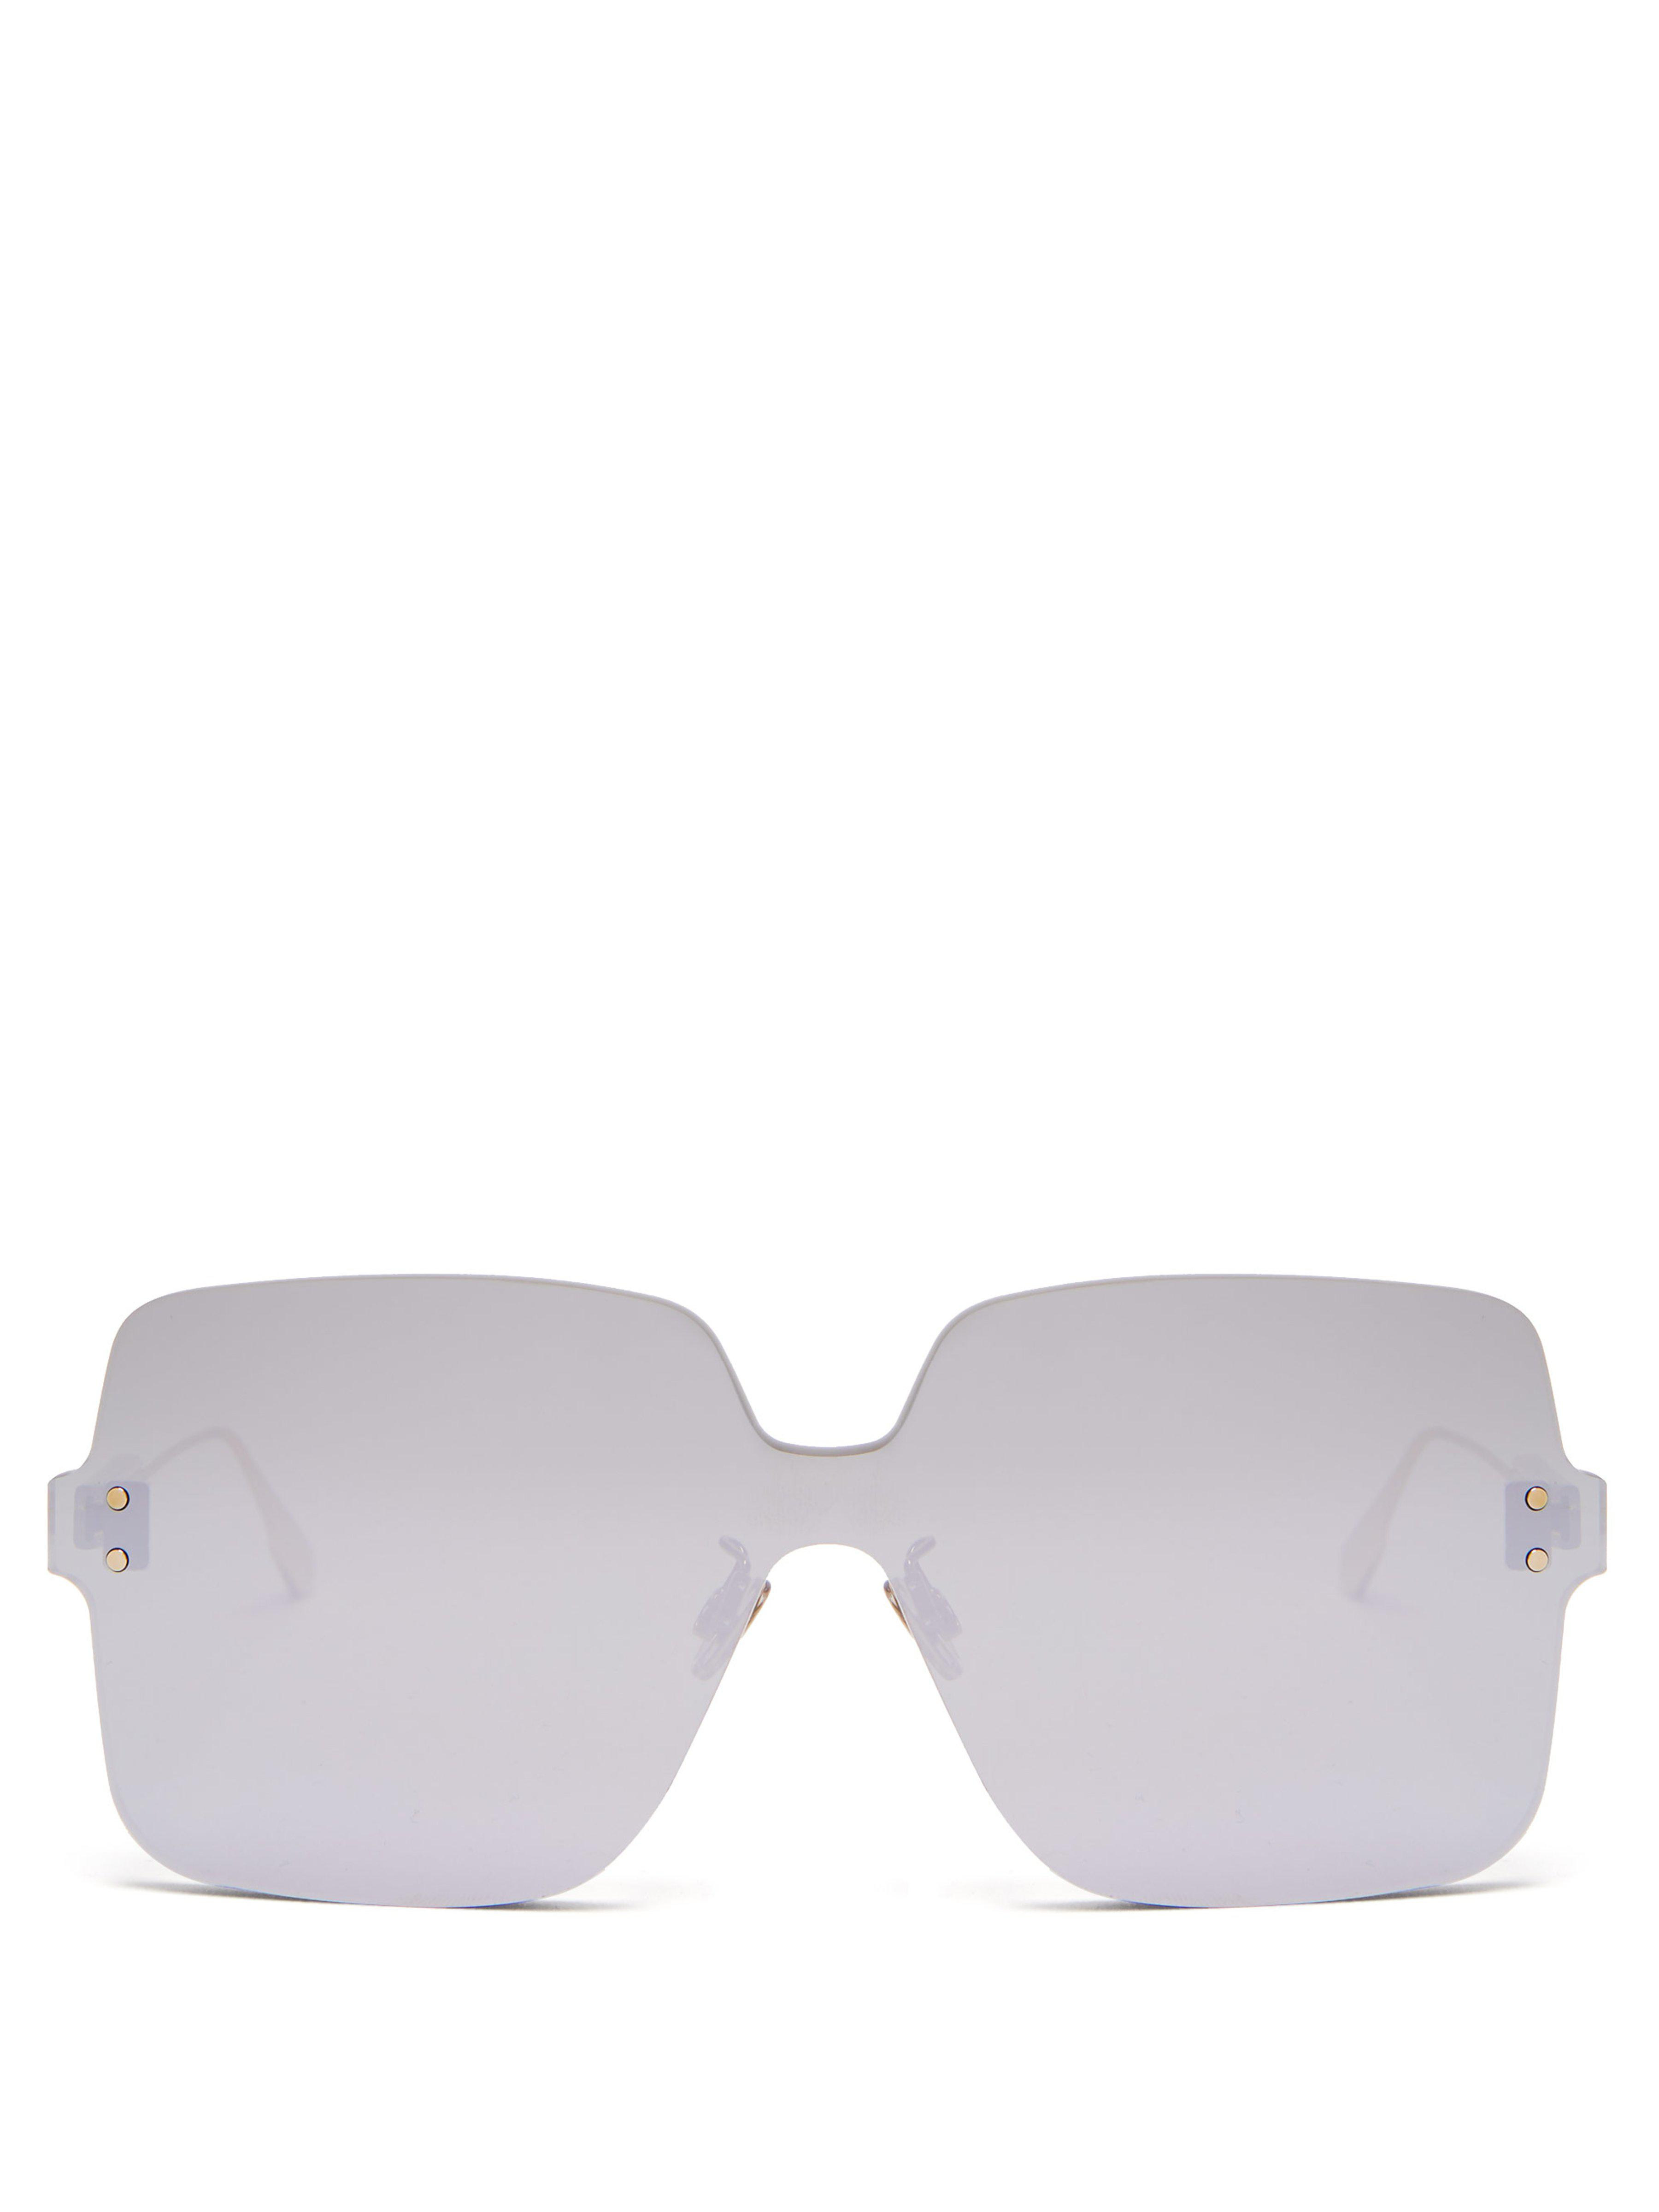 a8883d9feca Dior Colourquake1 Sunglasses in Metallic - Lyst